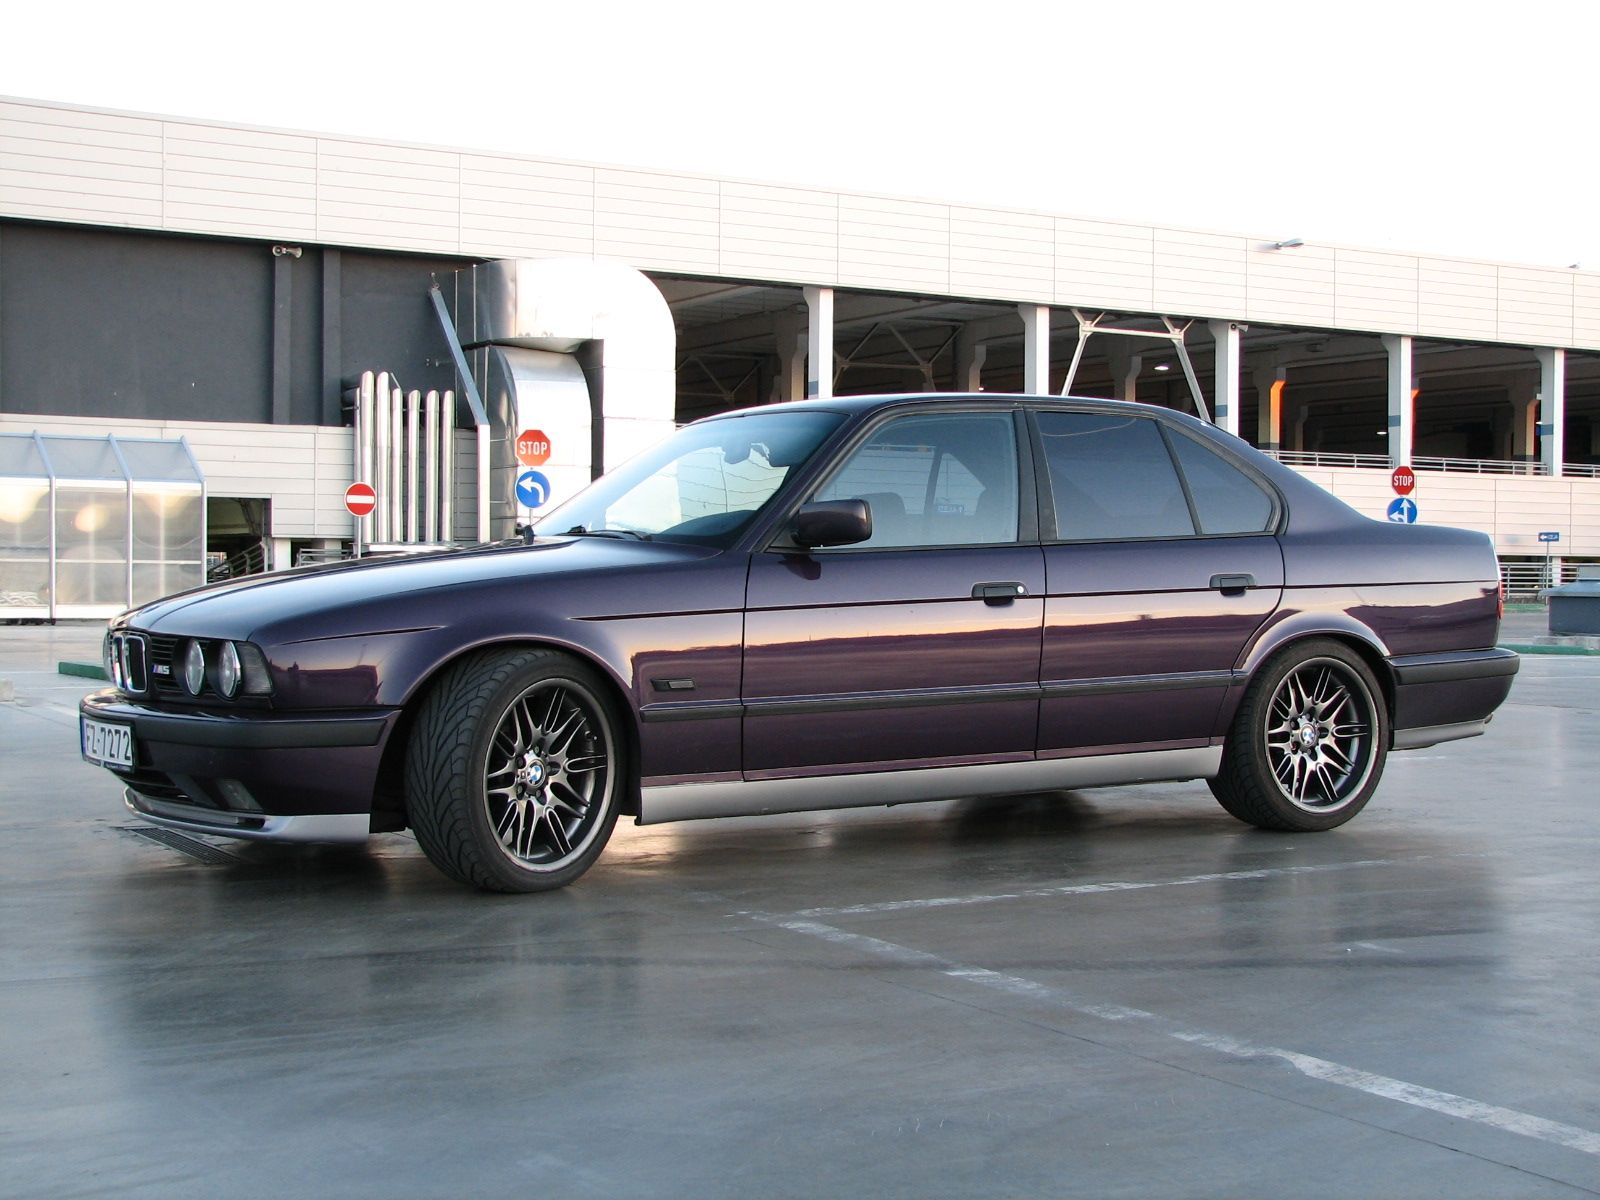 love daytona violet e34 m5 car porn pinterest violets bmw and cars. Black Bedroom Furniture Sets. Home Design Ideas